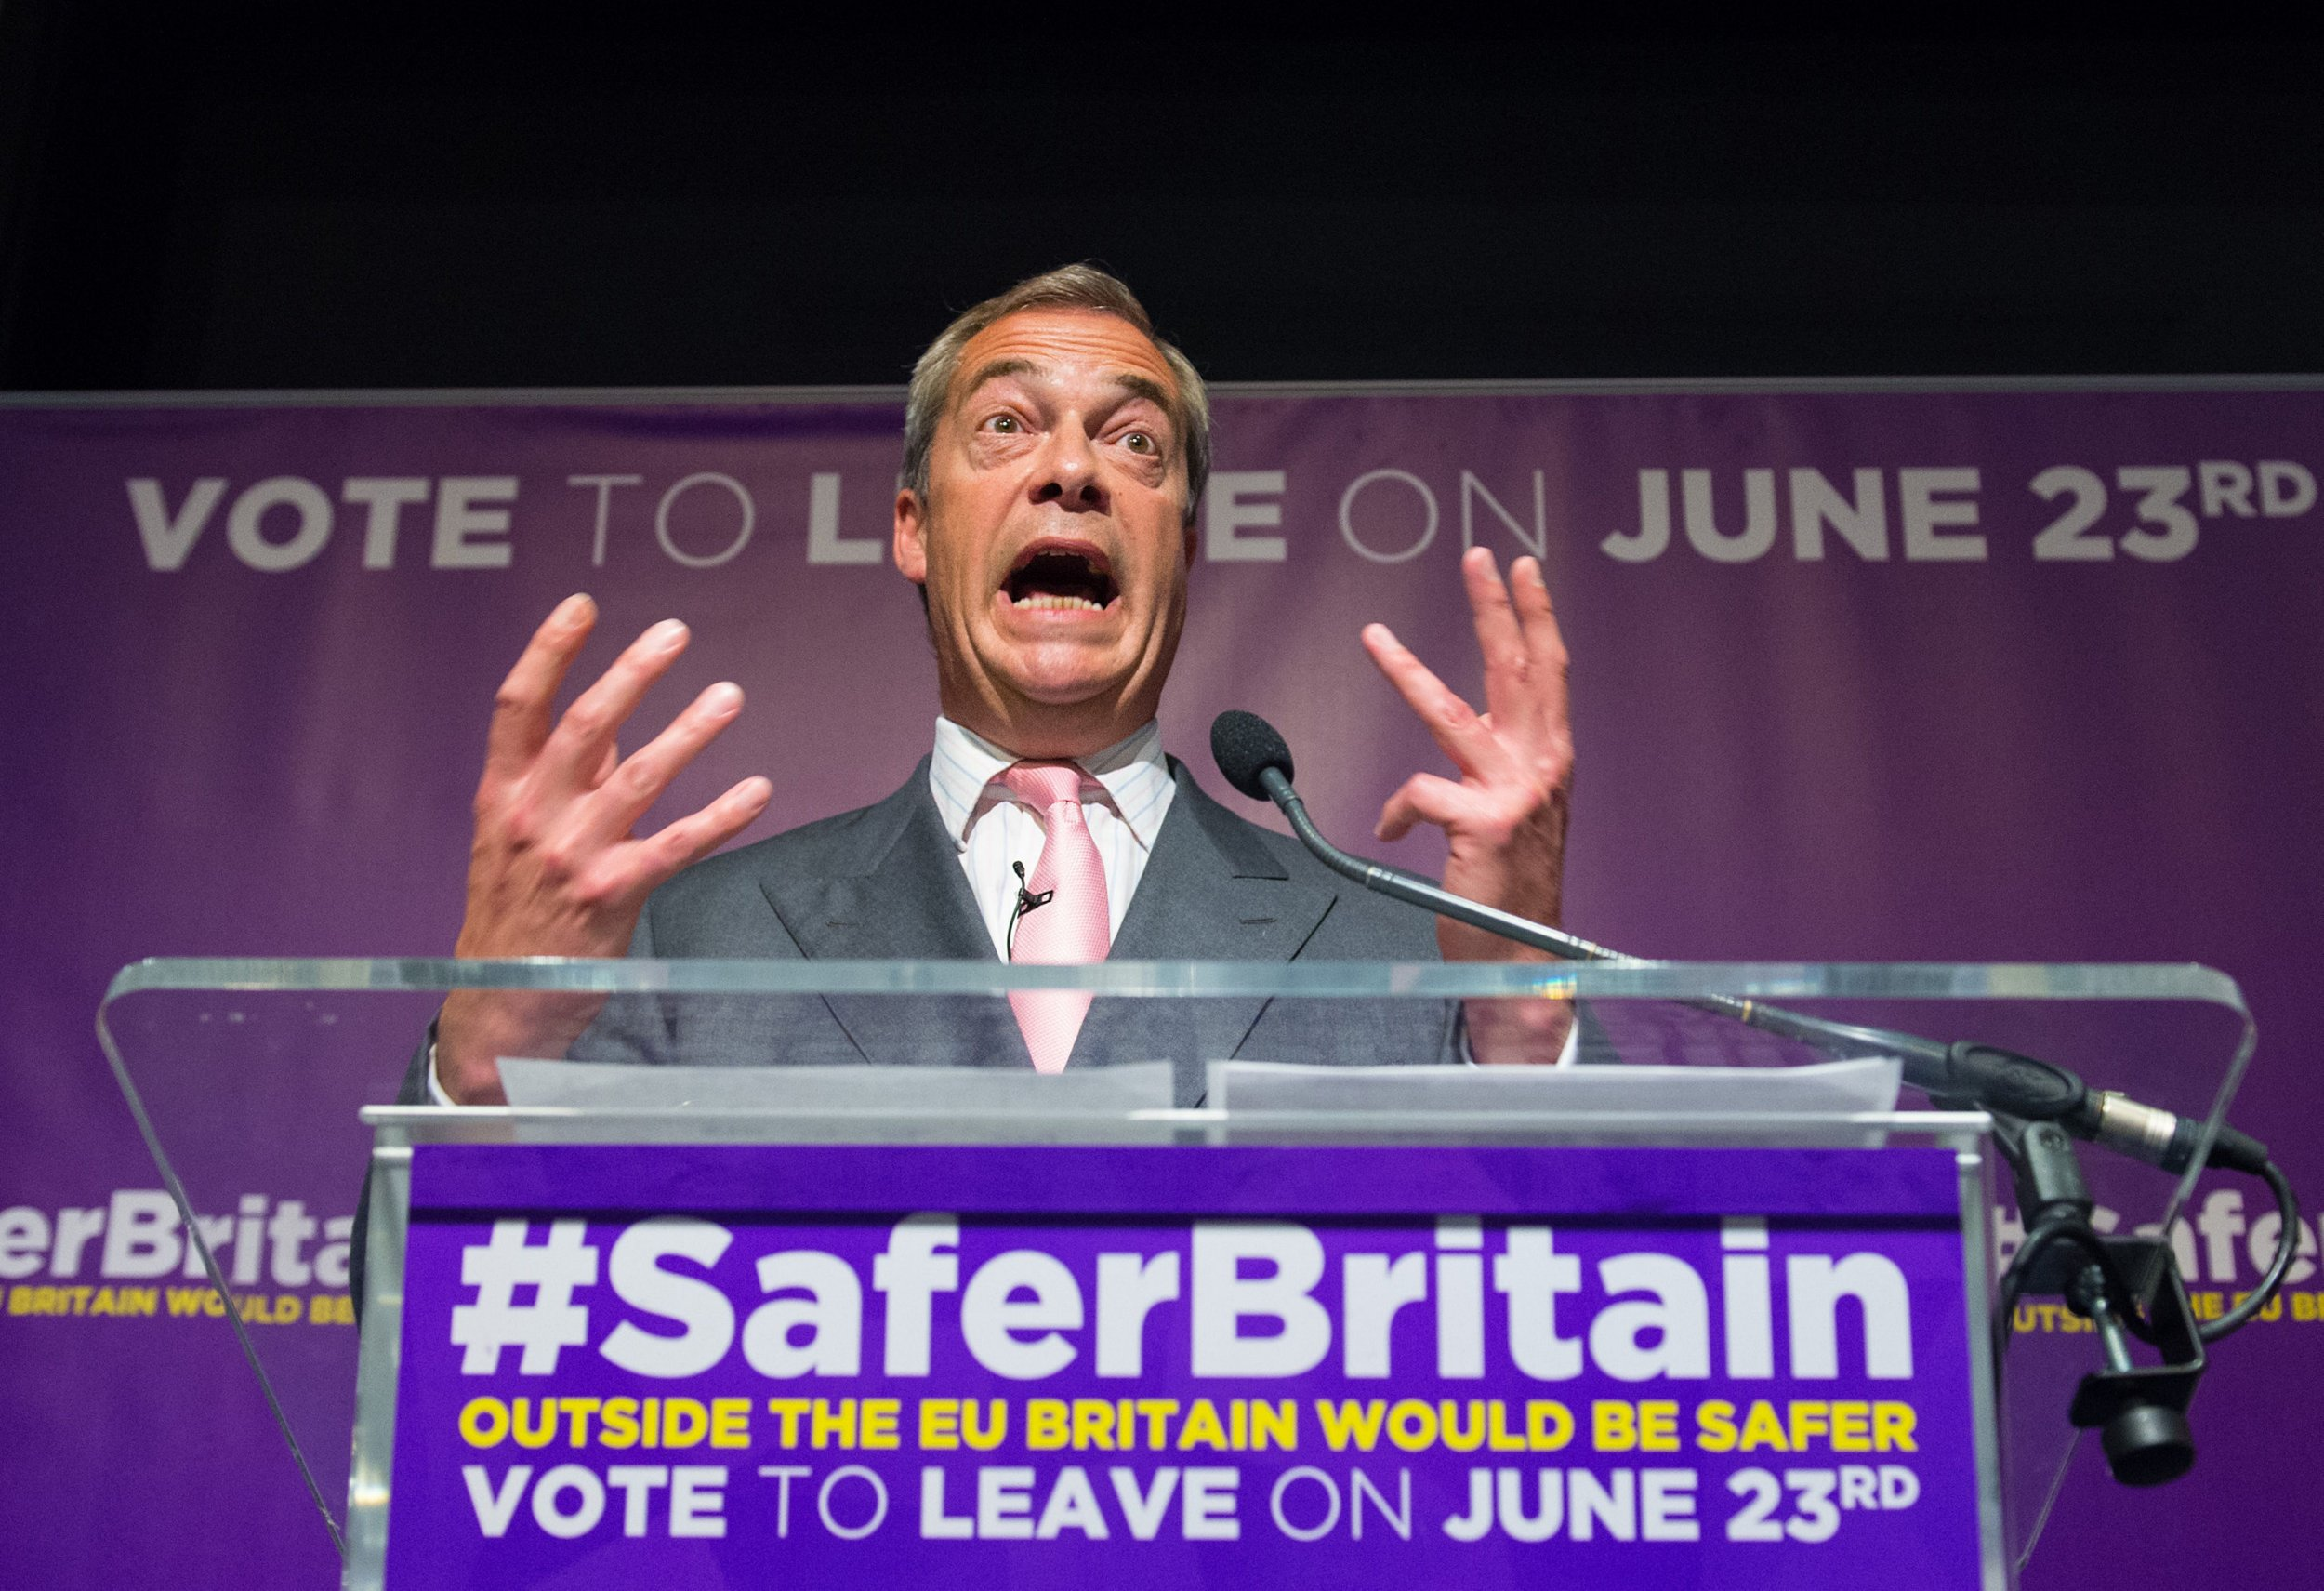 Farage claims women at risk of 'Cologne-style sex attacks' if UK stays in EU